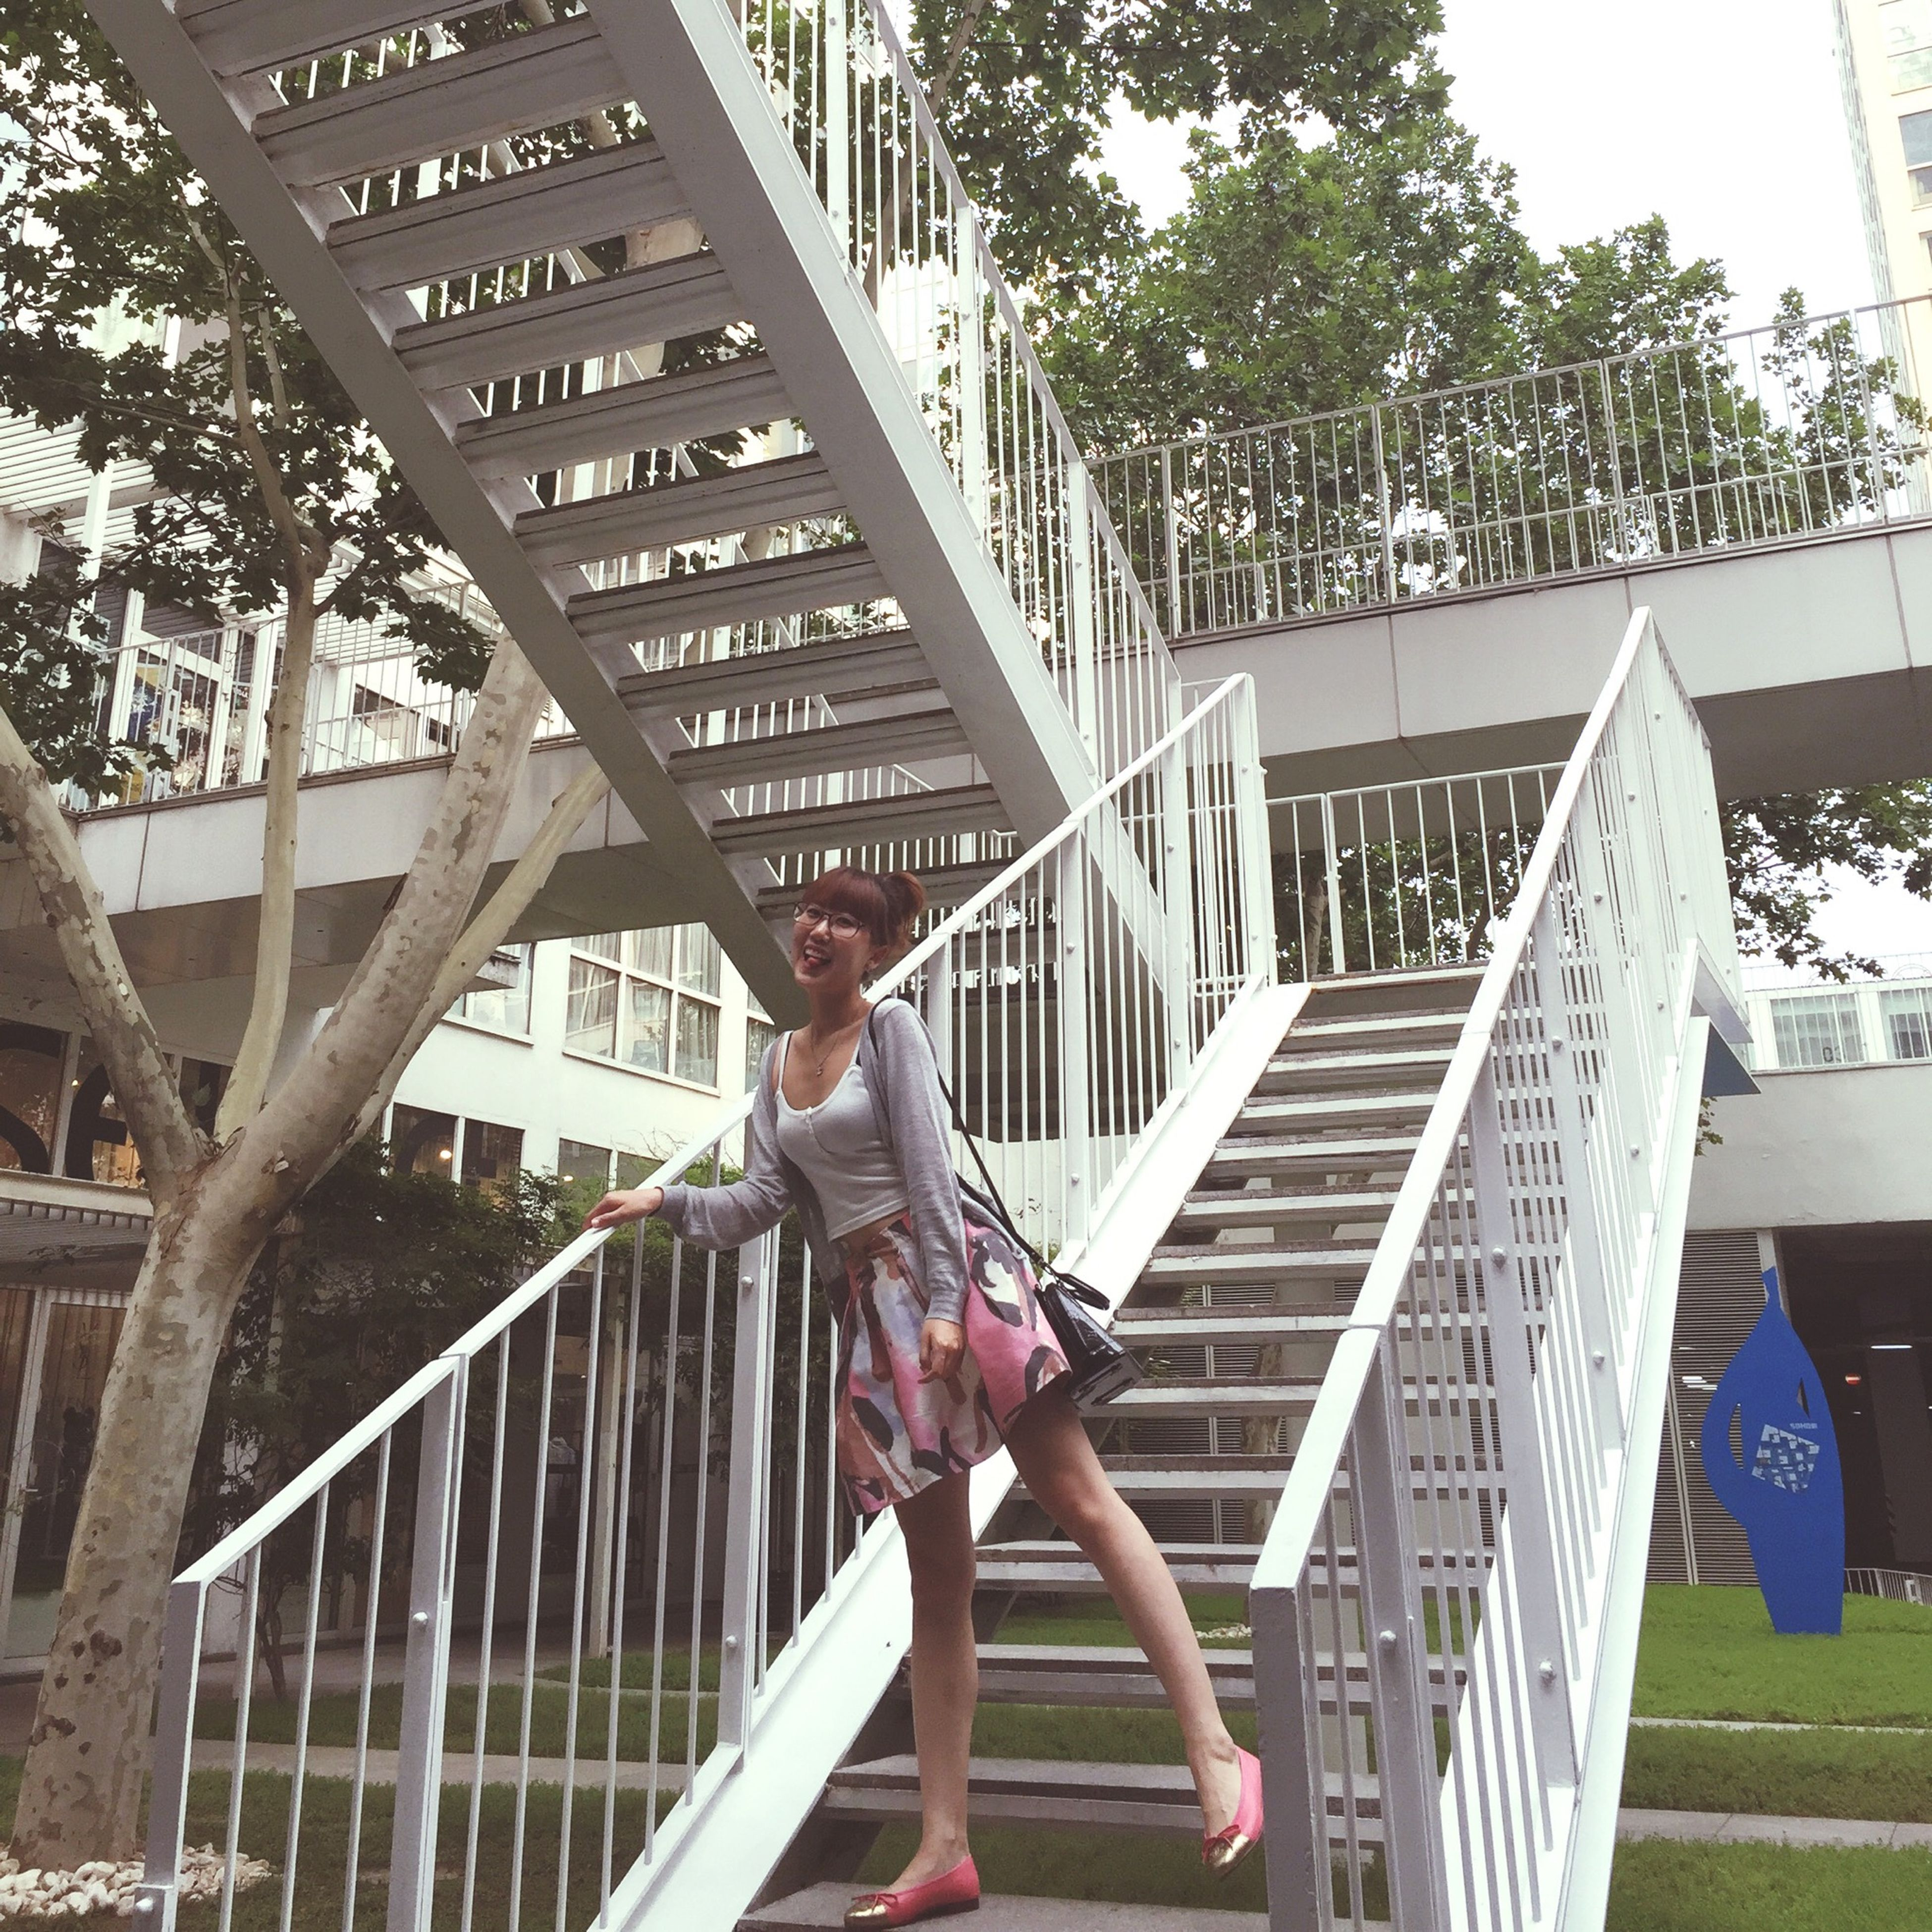 lifestyles, built structure, leisure activity, full length, architecture, railing, casual clothing, person, building exterior, young adult, standing, day, young women, tree, childhood, low angle view, sunlight, outdoors